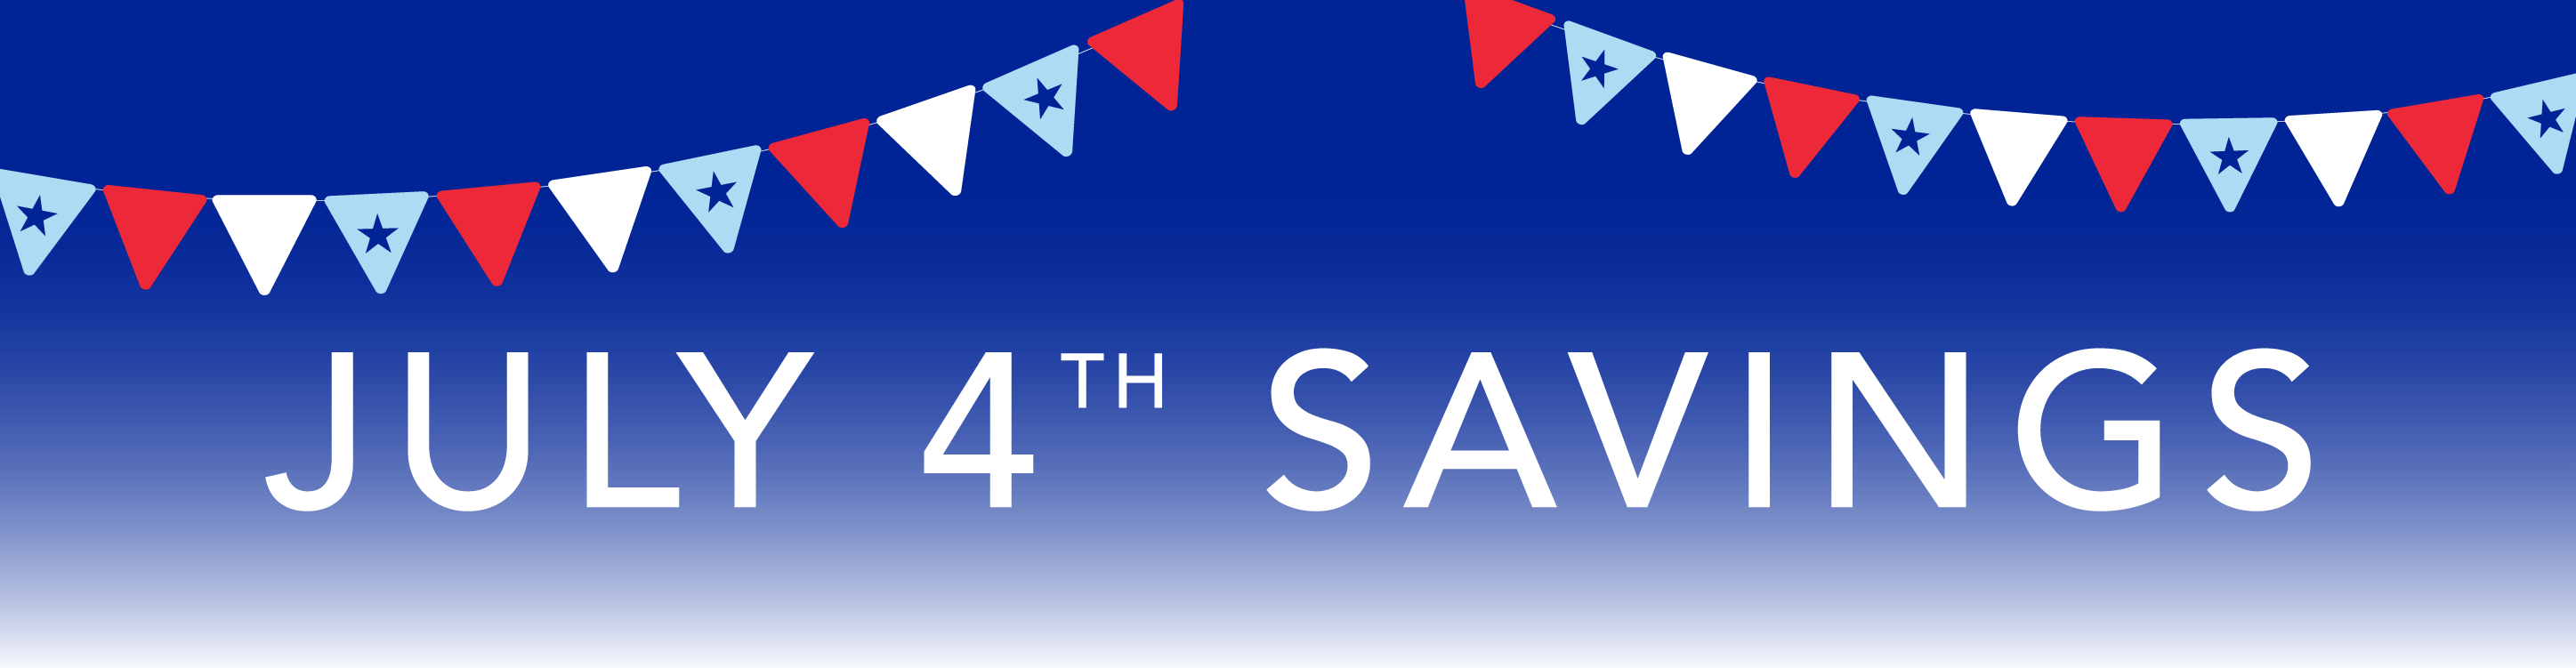 Samsung July 4th Savings Event